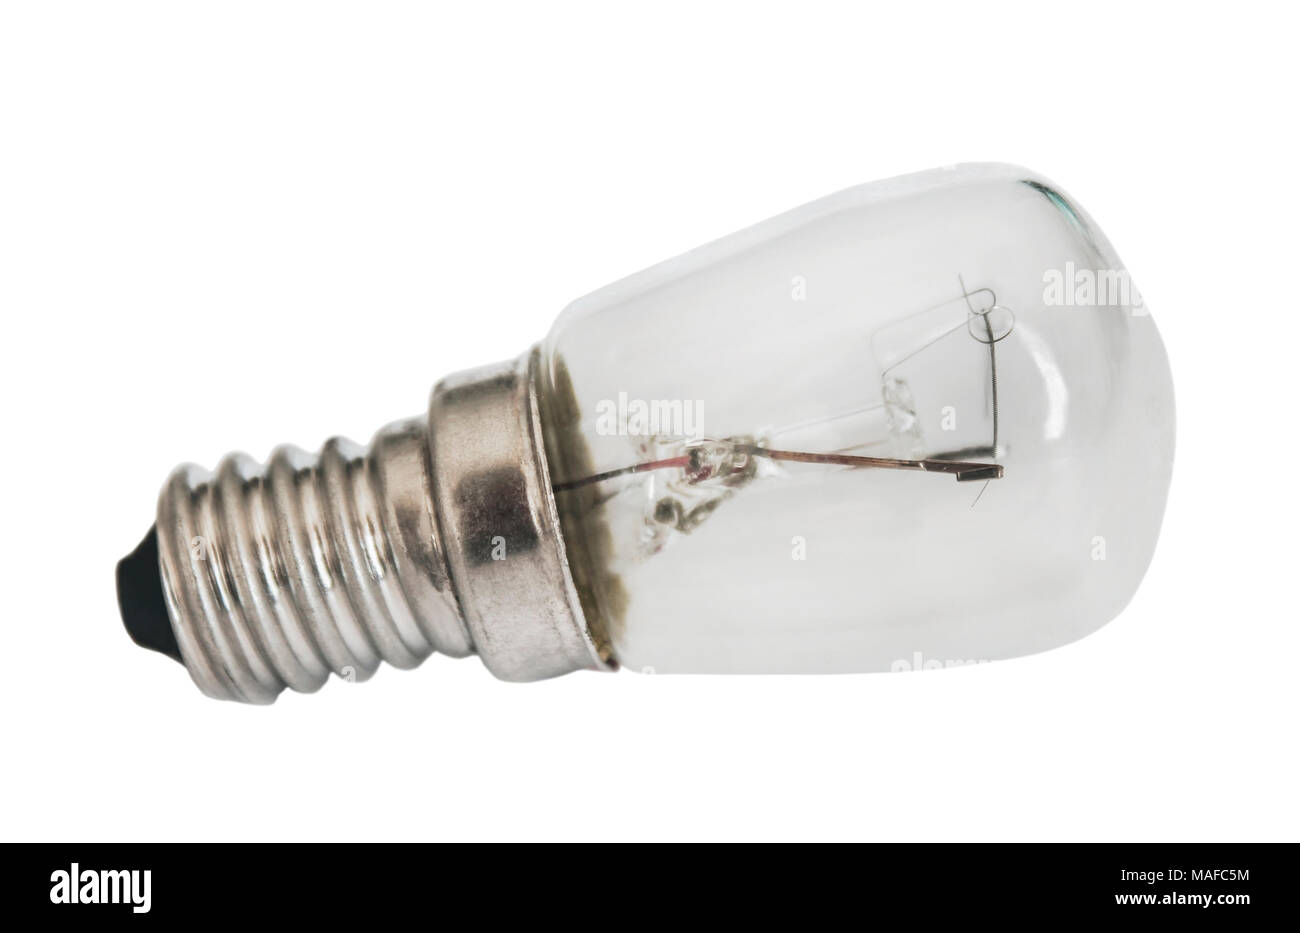 Small electric lamp closeup isolated on white background - Stock Image